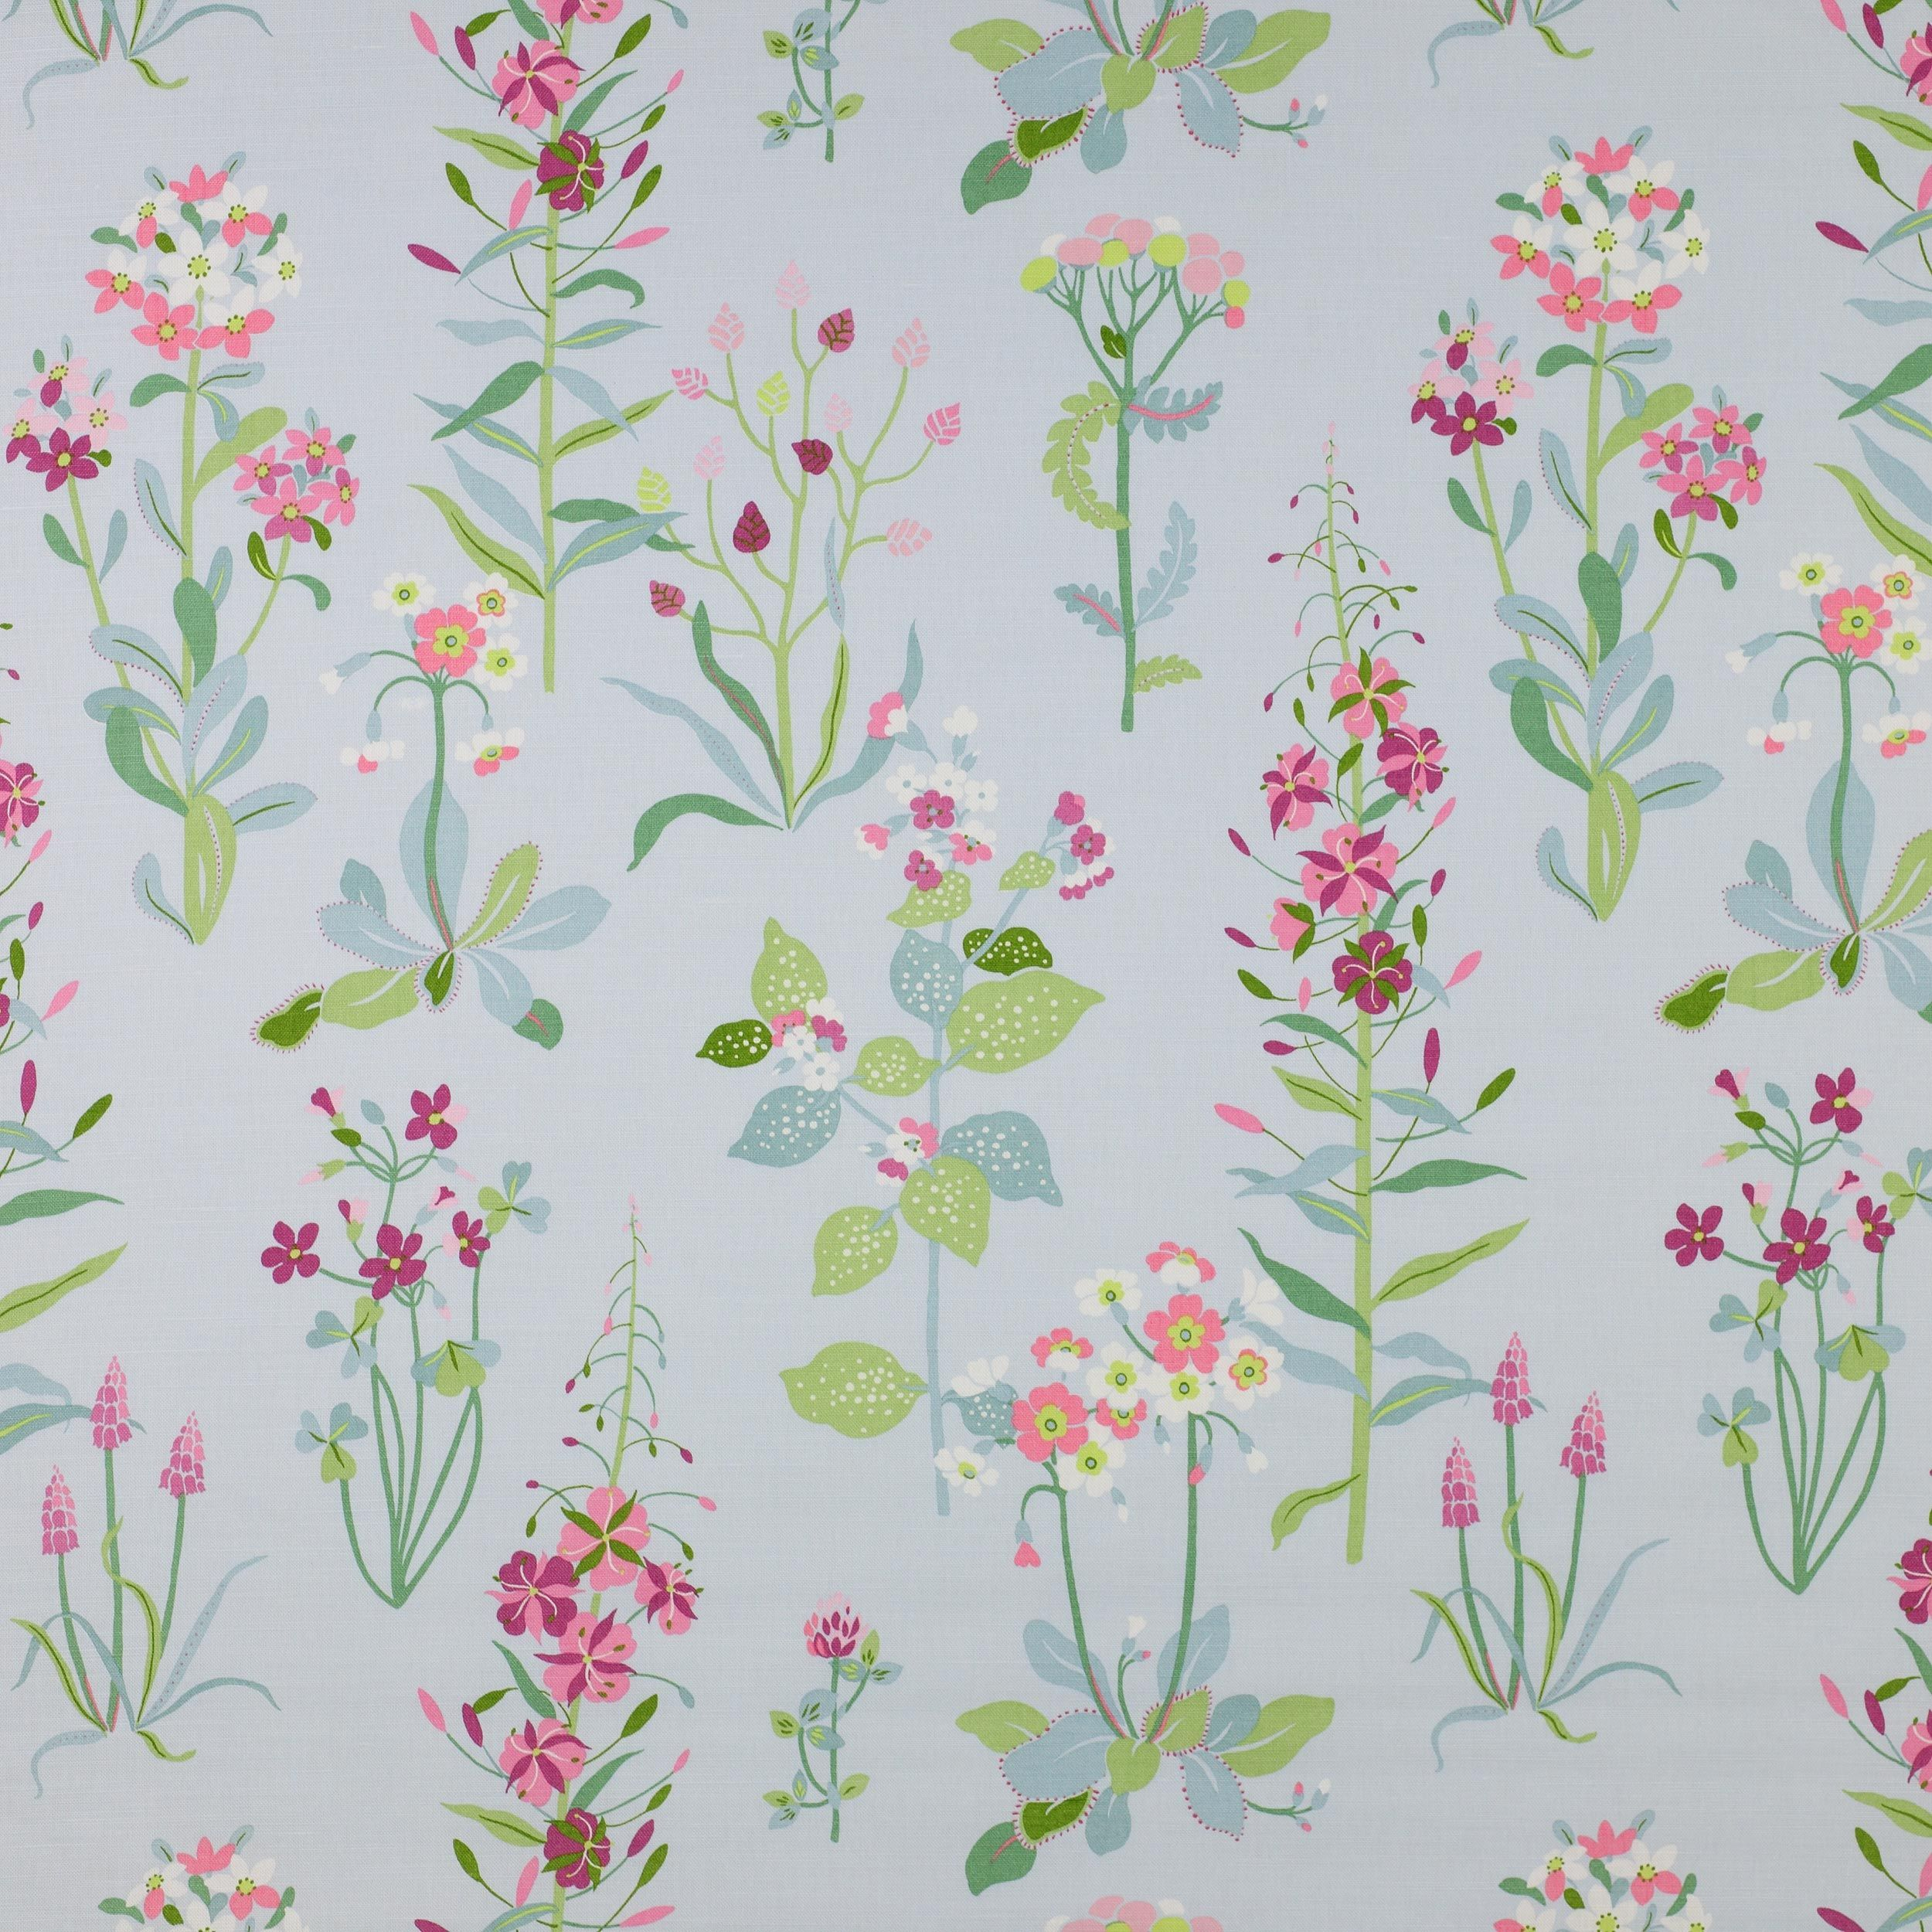 Willowbrook fabric cowtan design library coventry master discover all the information about the product upholstery fabric for curtains floral pattern cotton willowbrook jane churchill and find where you jeuxipadfo Choice Image